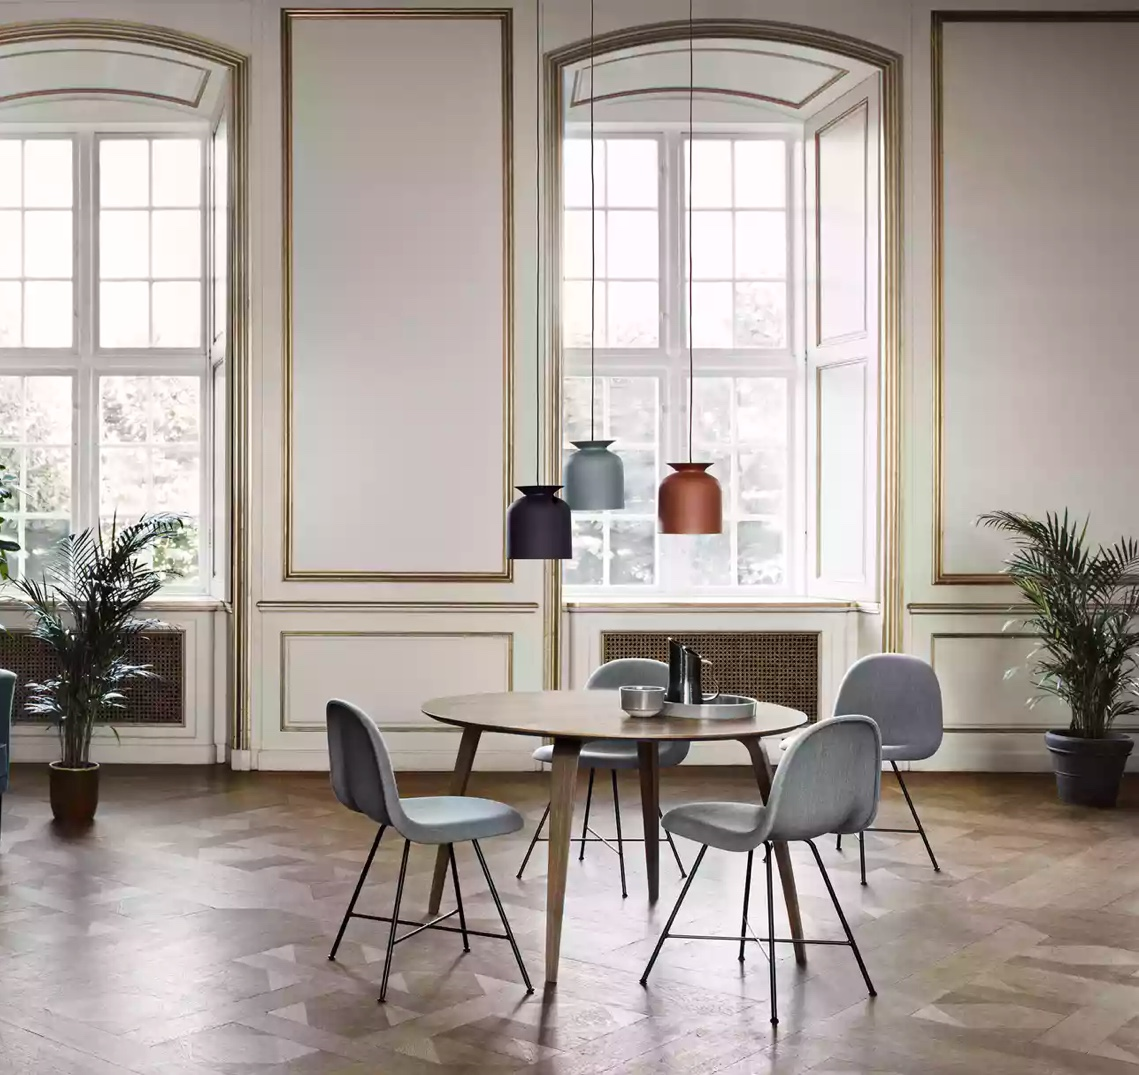 Gubi-Round-Dining-Table-Luxury-Wooden-Furniture-Modern-Room